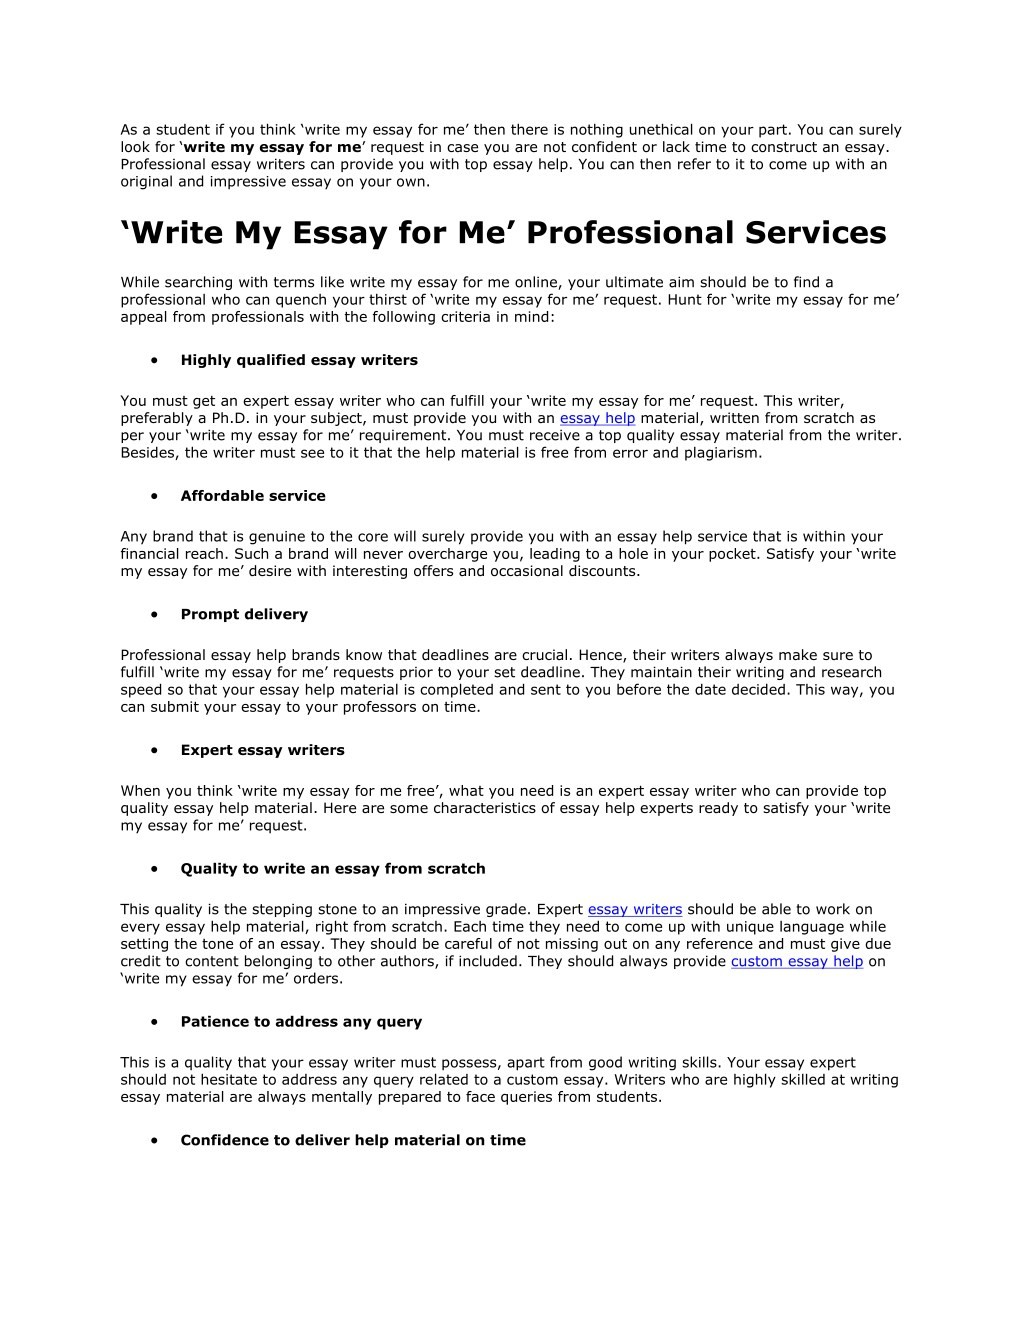 017 Write My Essay For Me Example As Student If You Think Surprising App Free Uk Large